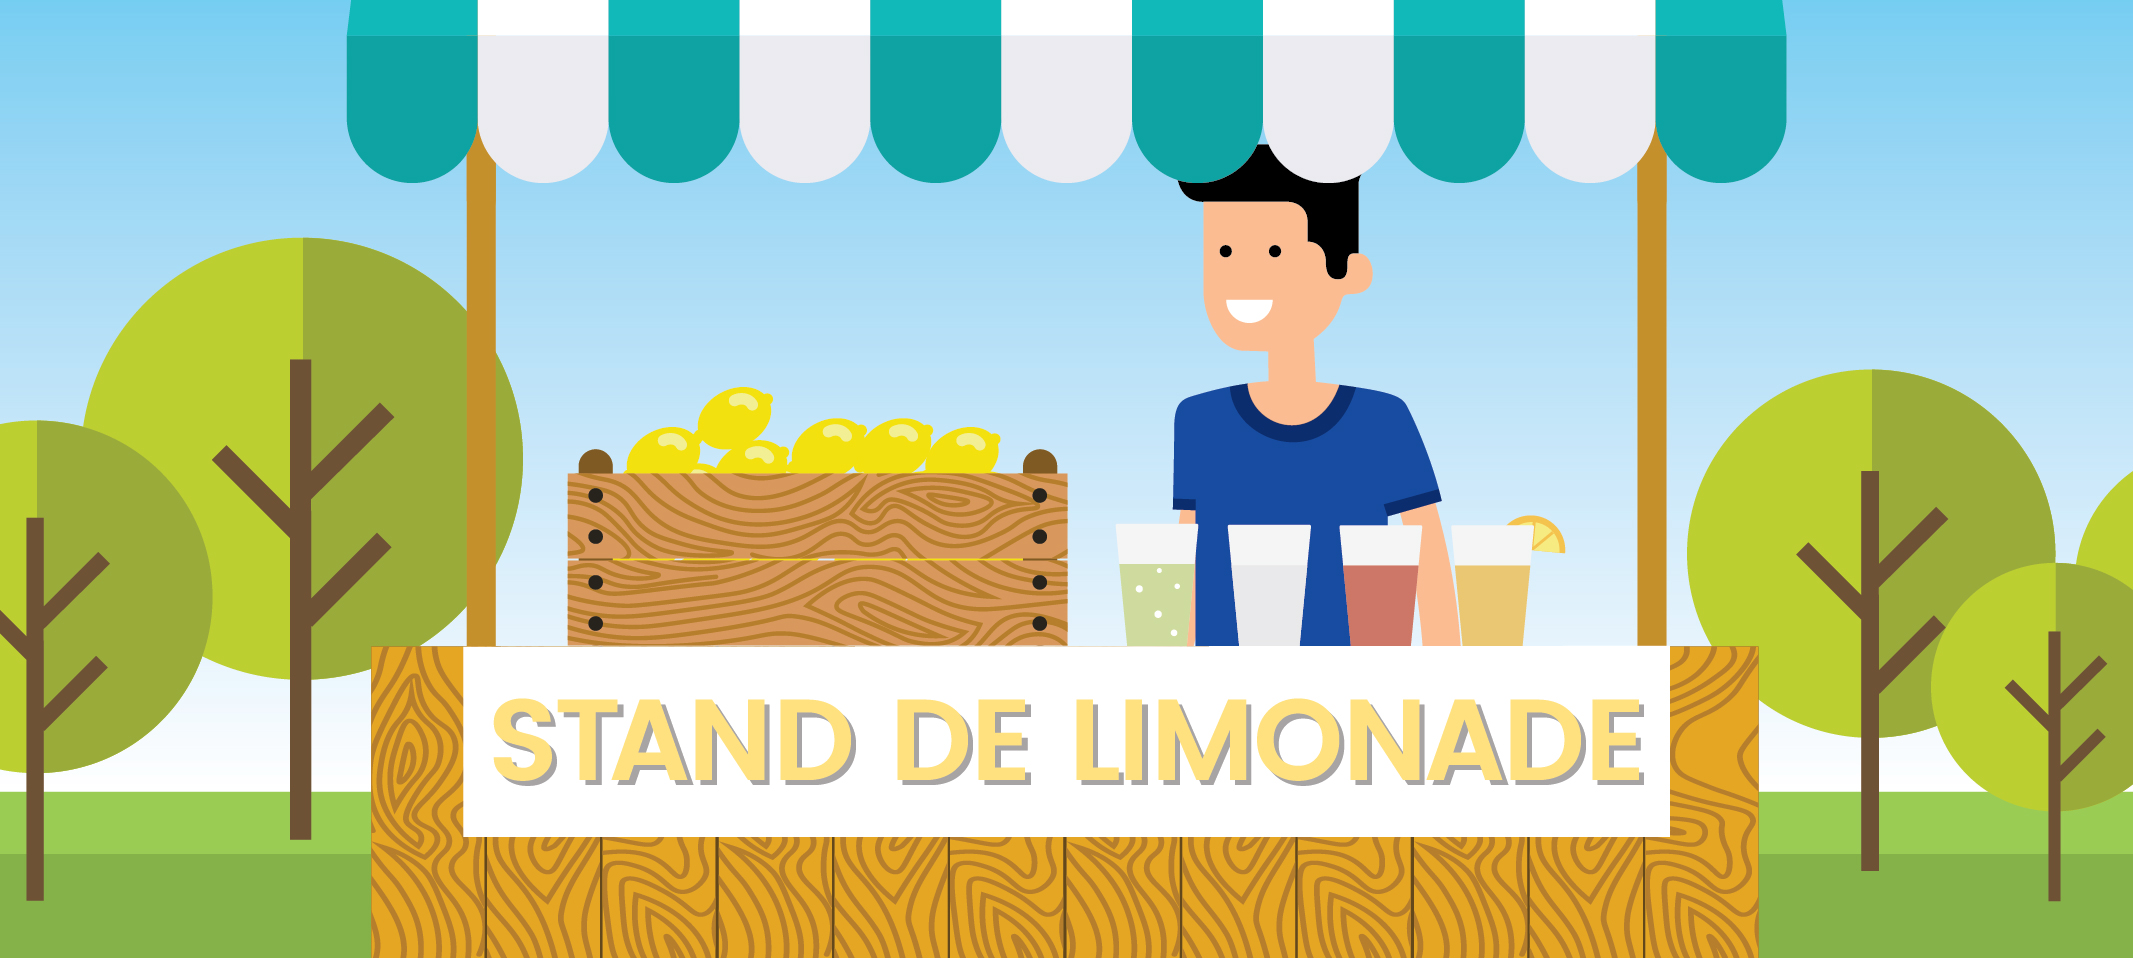 Limonade [In-Text - Intrapreneur Stand]